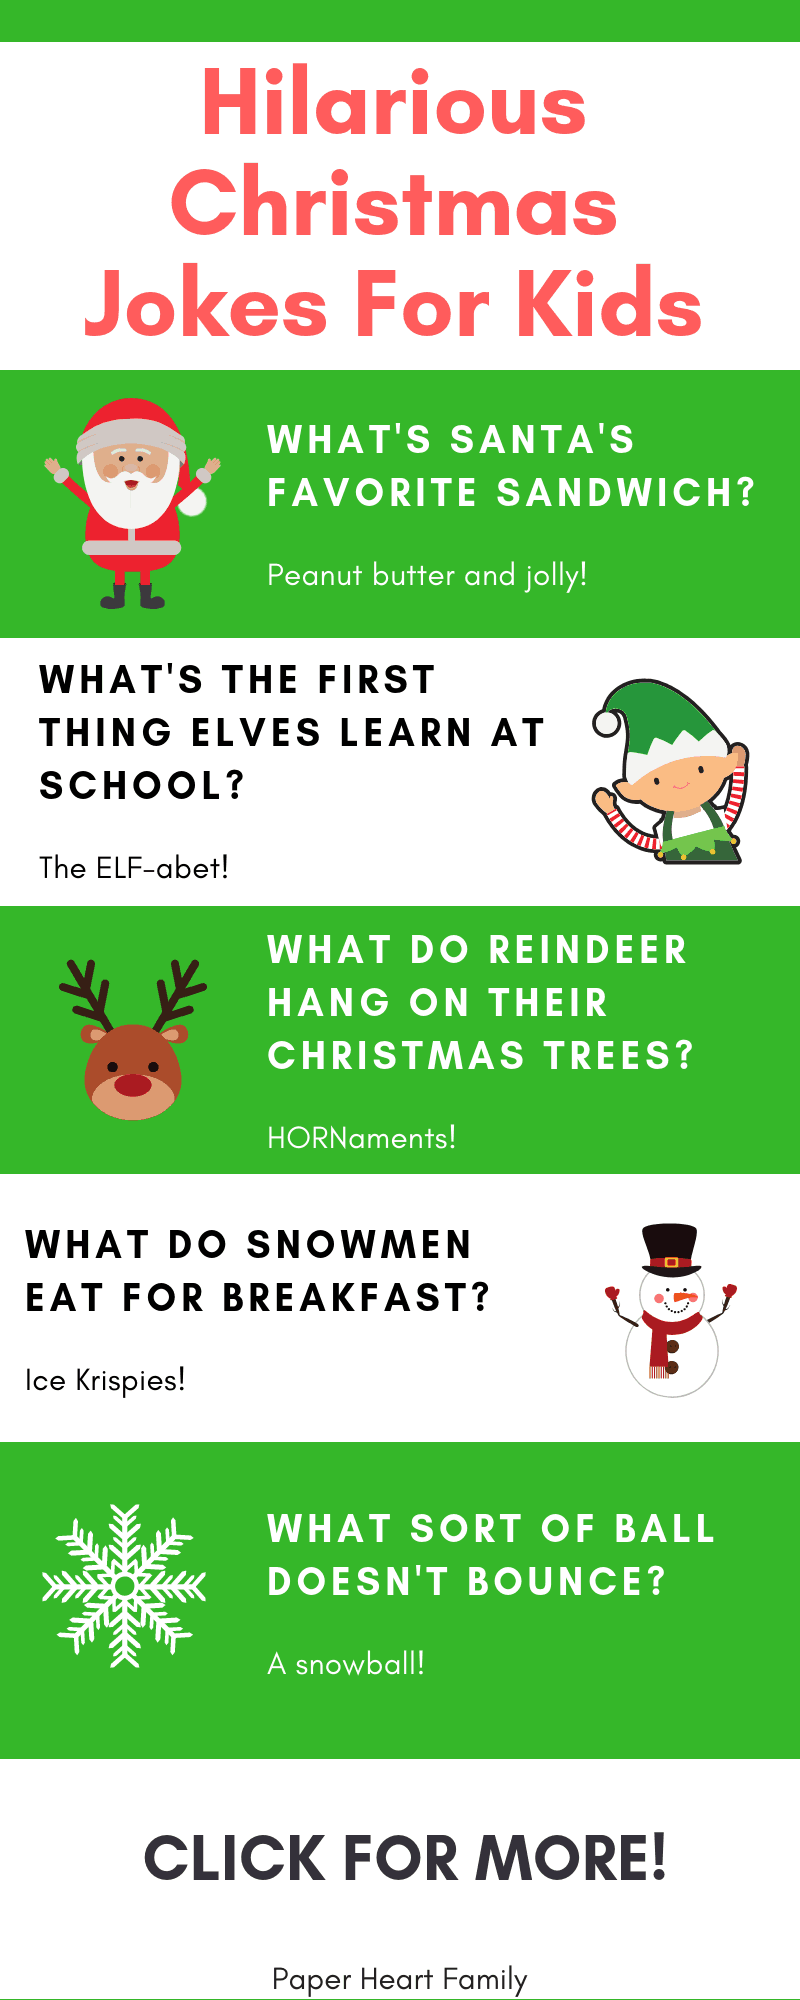 Start a new holiday tradition by sharing these Christmas jokes for kids with your family.